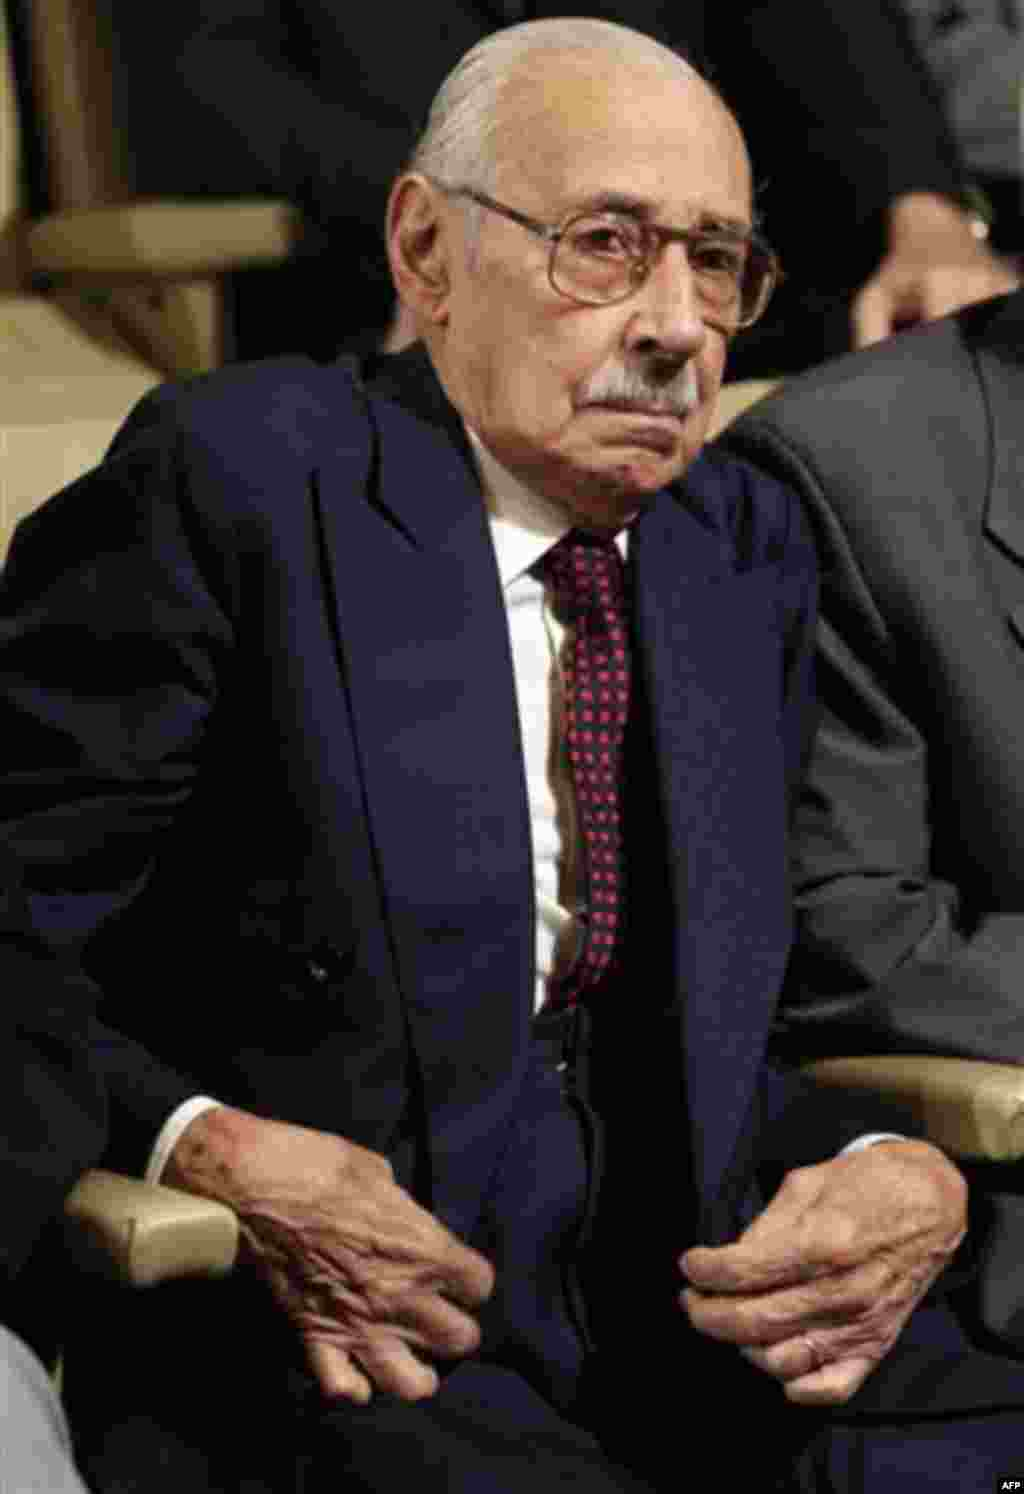 Former Argentine dictator Jorge Rafael Videla attends the last day of his trial in Cordoba, Argentina, Wednesday Dec. 22, 2010. Videla and former officers are facing charges involving 31 killings during the country's dirty war. A verdict in the case is ex